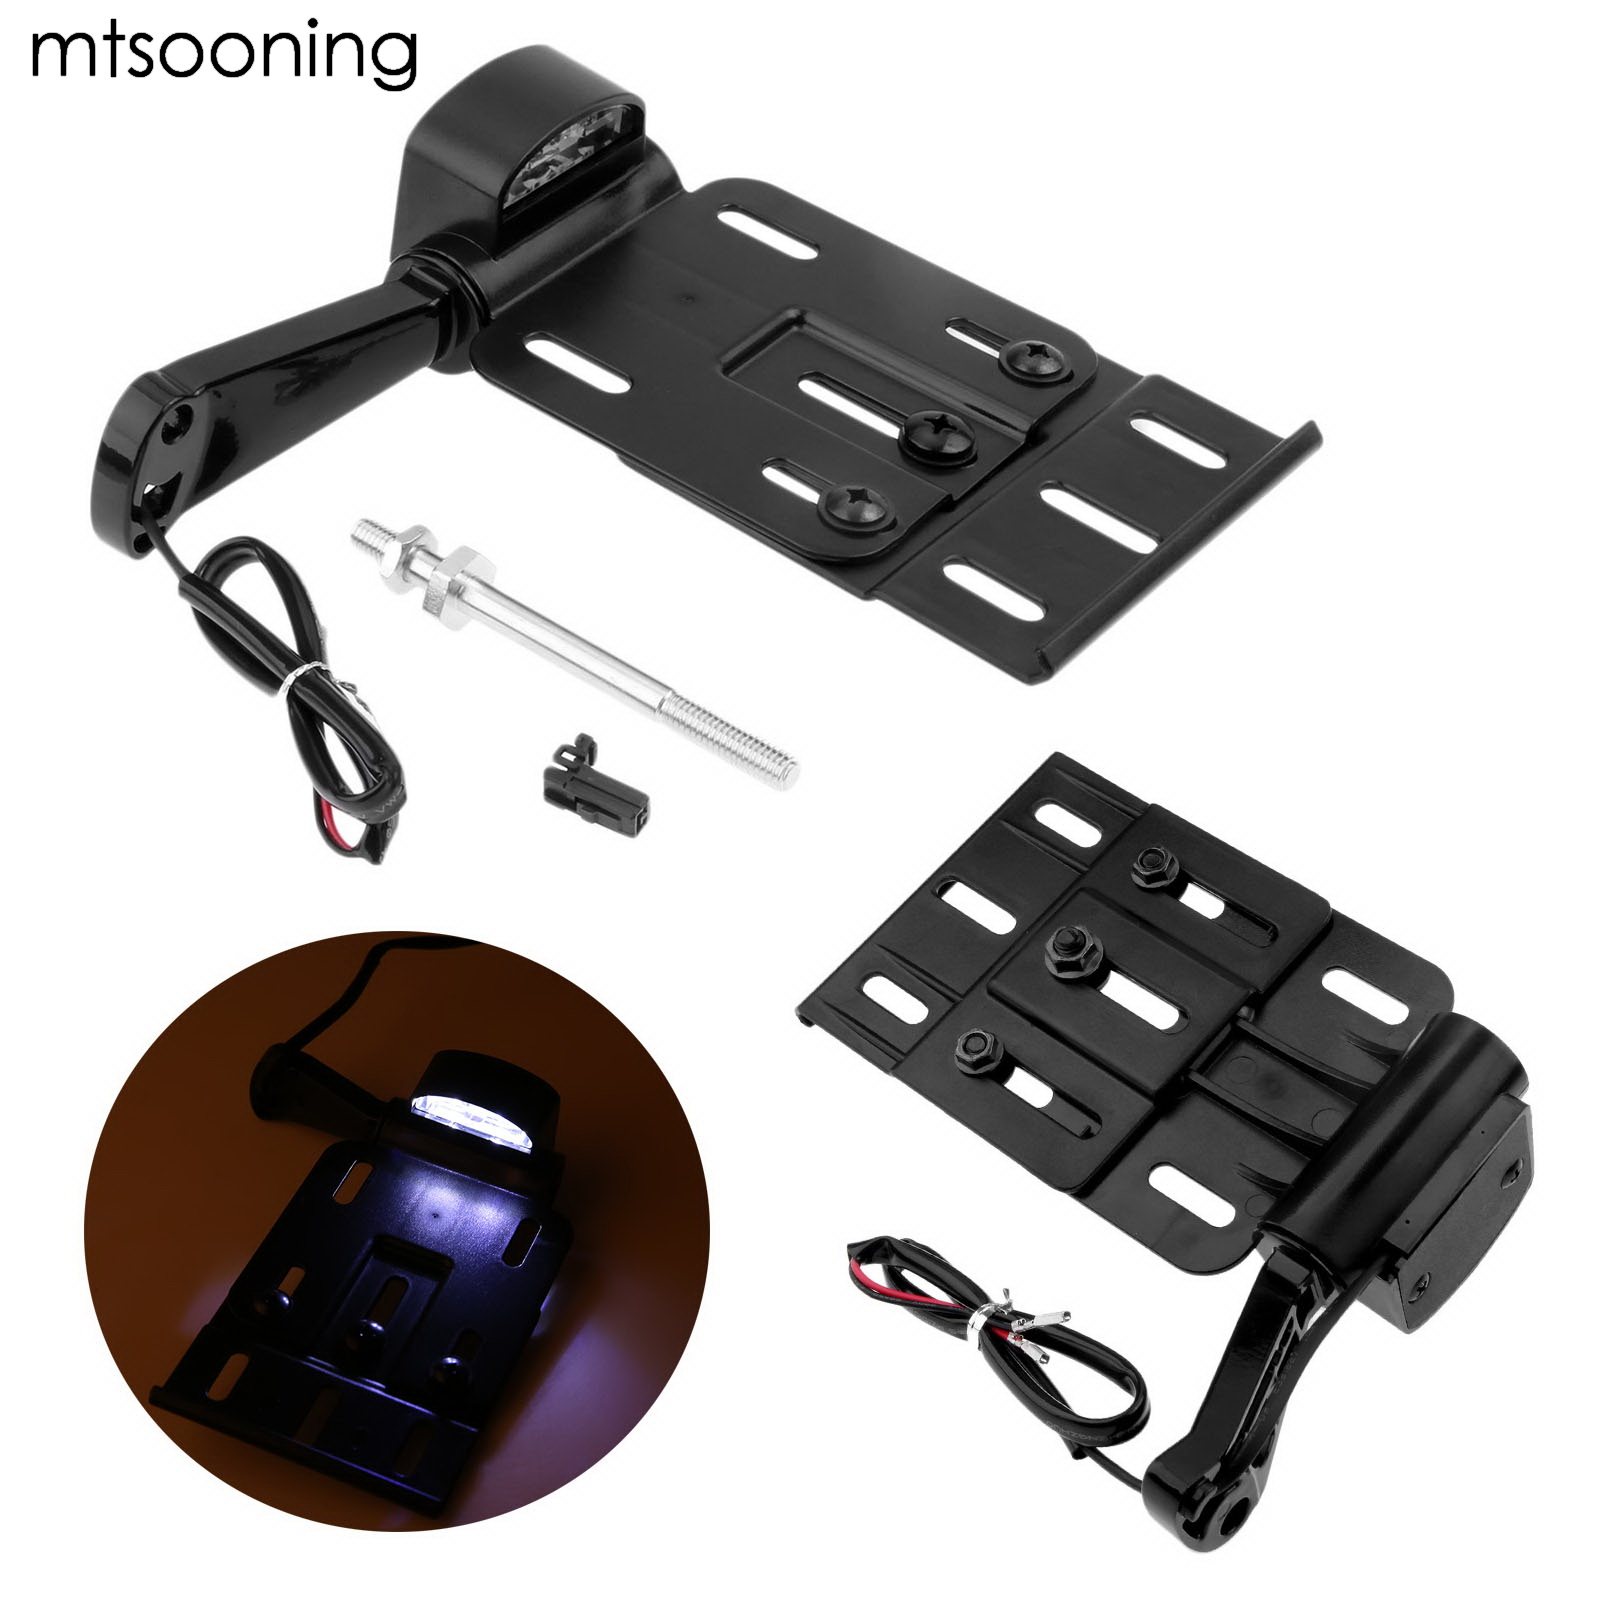 mtsooning Motorcycle Folding Side Mount LED License Plate Lights Frame Holder Black For Harley Sportster 883 1200 48 2004-2016 цена